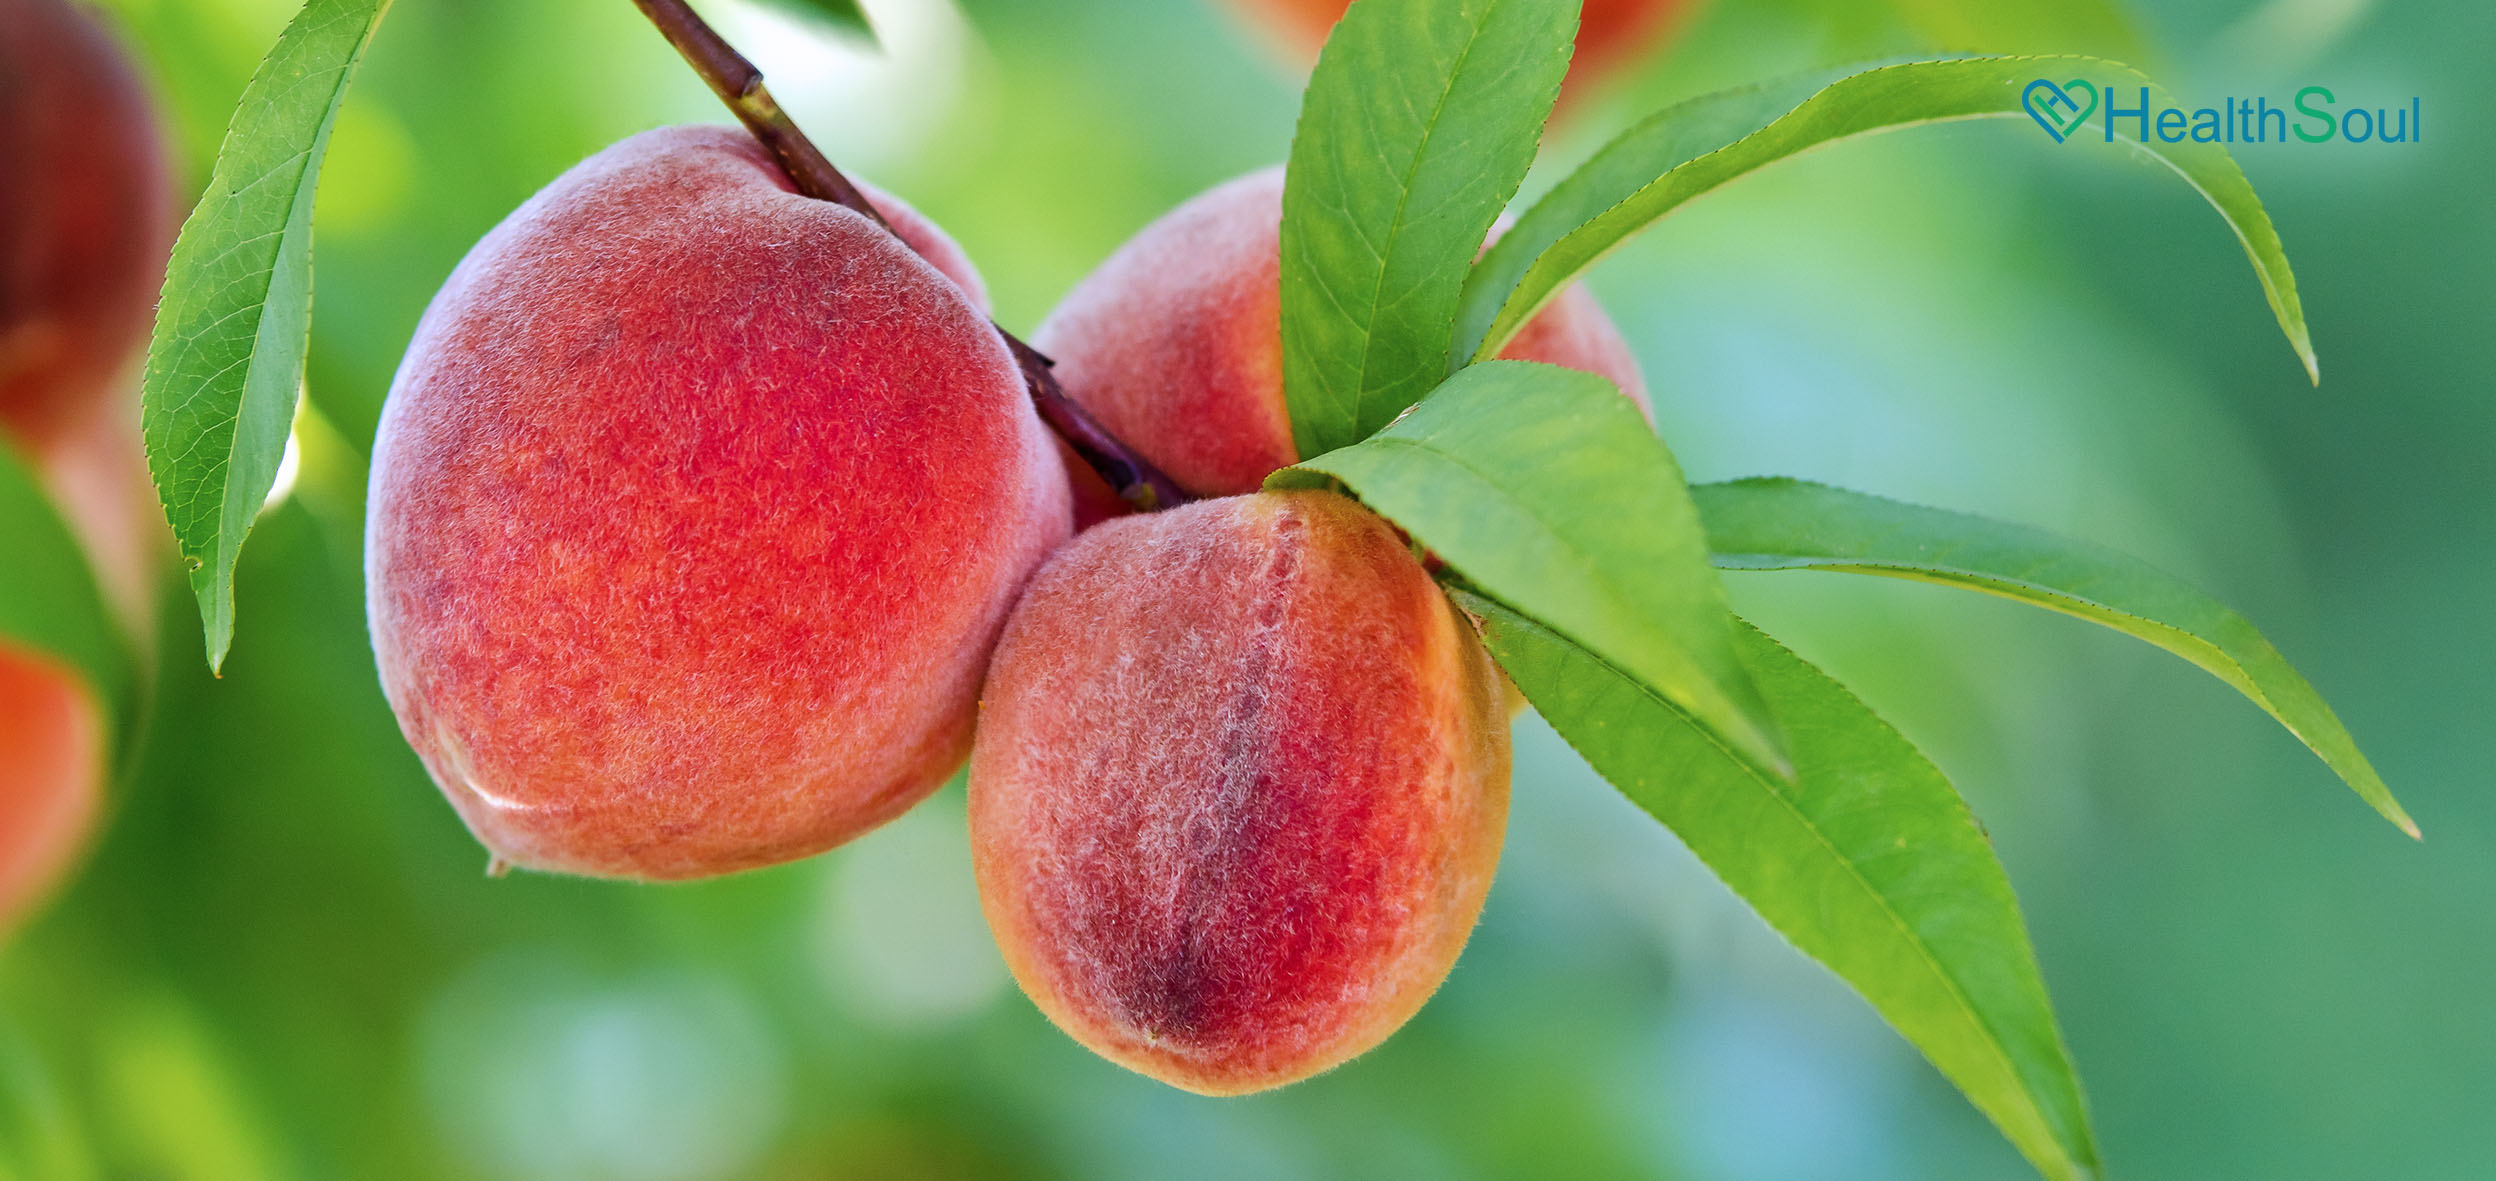 Health benefits of peaches | HealthSoul